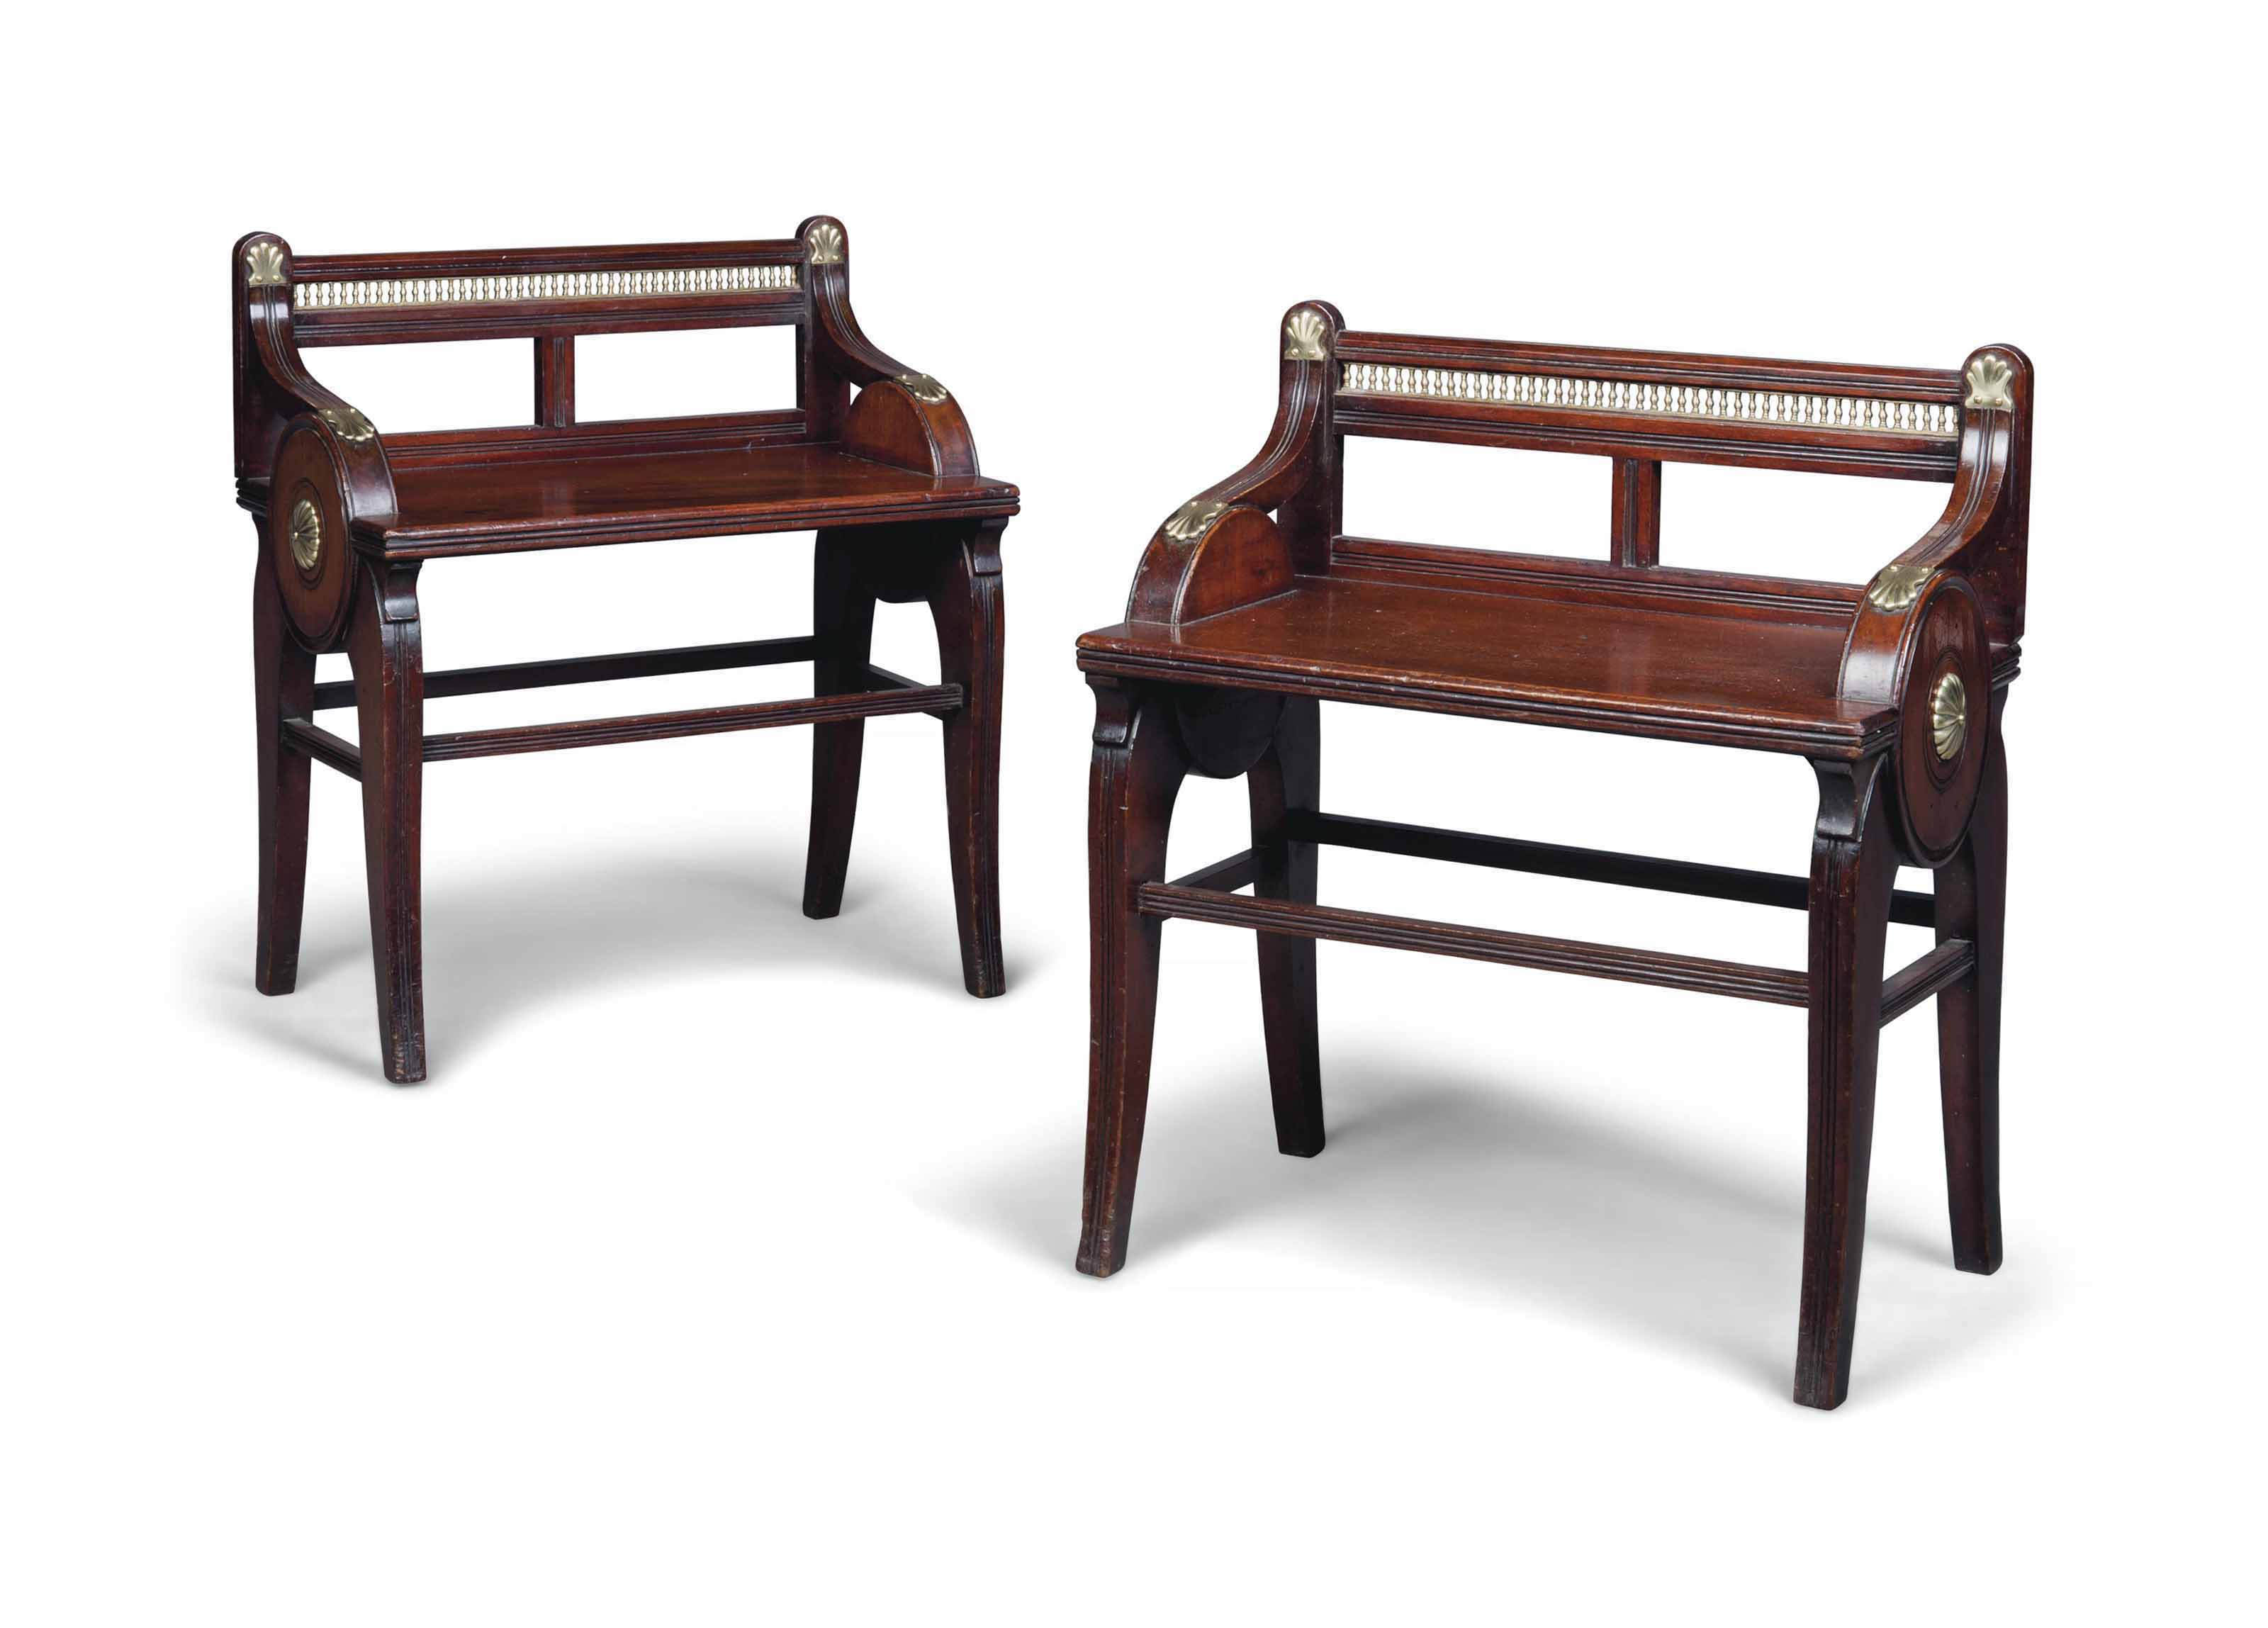 A PAIR OF LATE VICTORIAN BRASS-MOUNTED MAHOGANY HALL SEATS